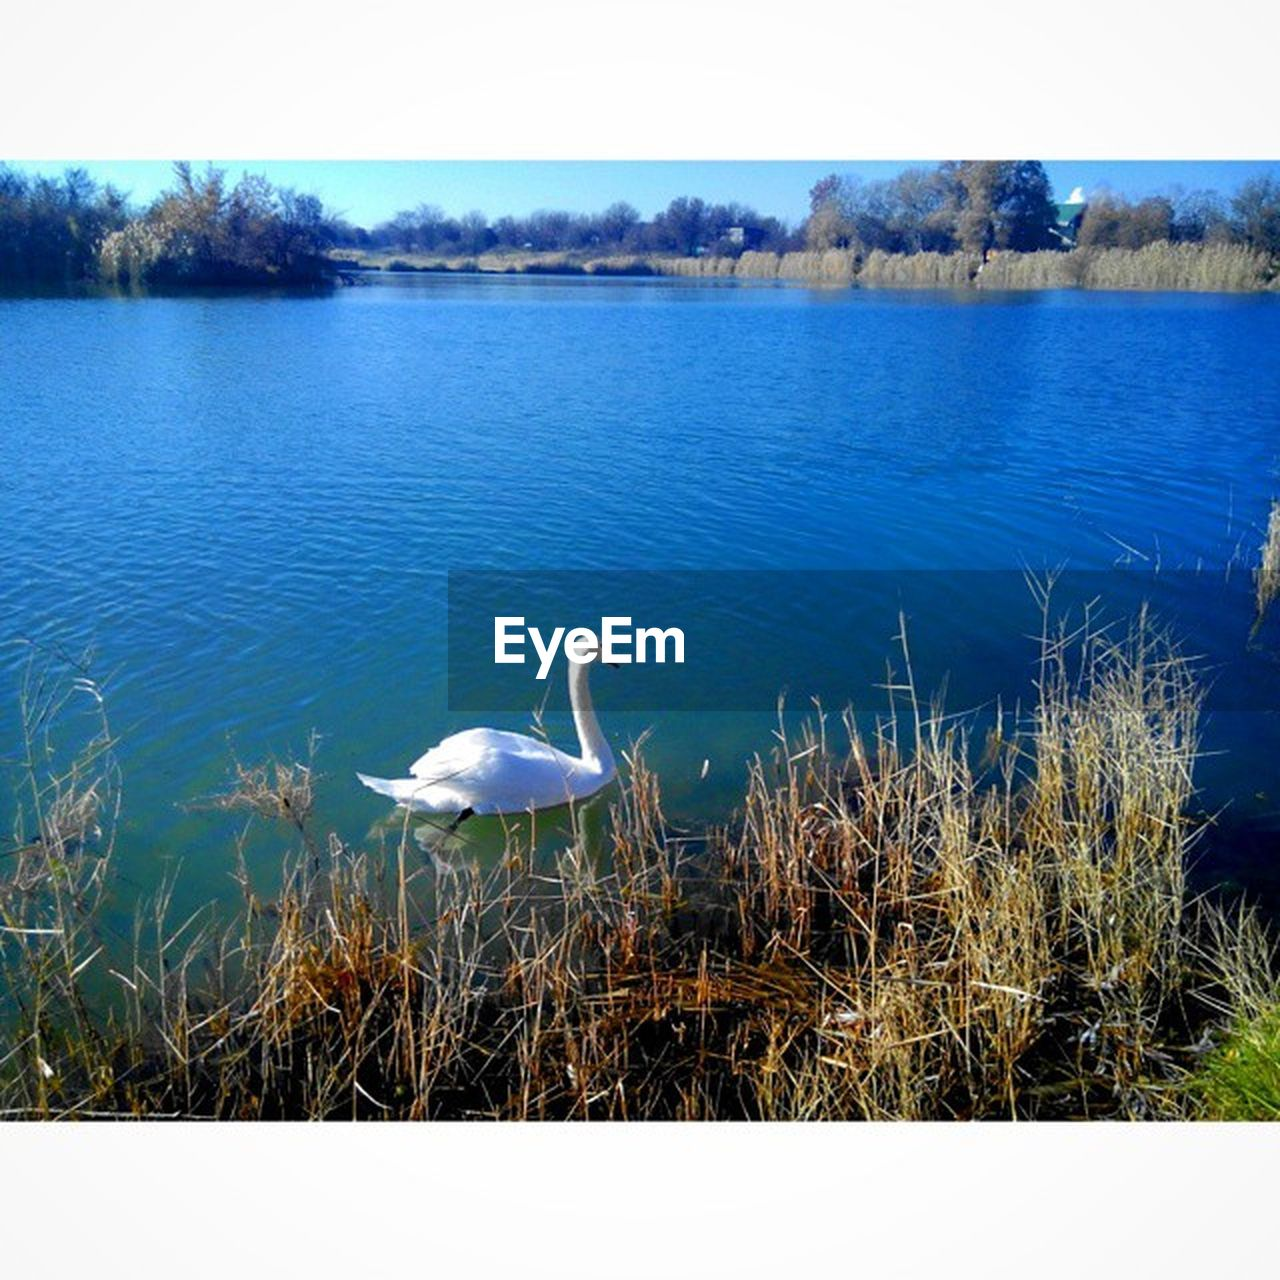 water, lake, one animal, animals in the wild, animal themes, nature, bird, day, outdoors, no people, beauty in nature, swan, tranquility, scenics, grass, great egret, sky